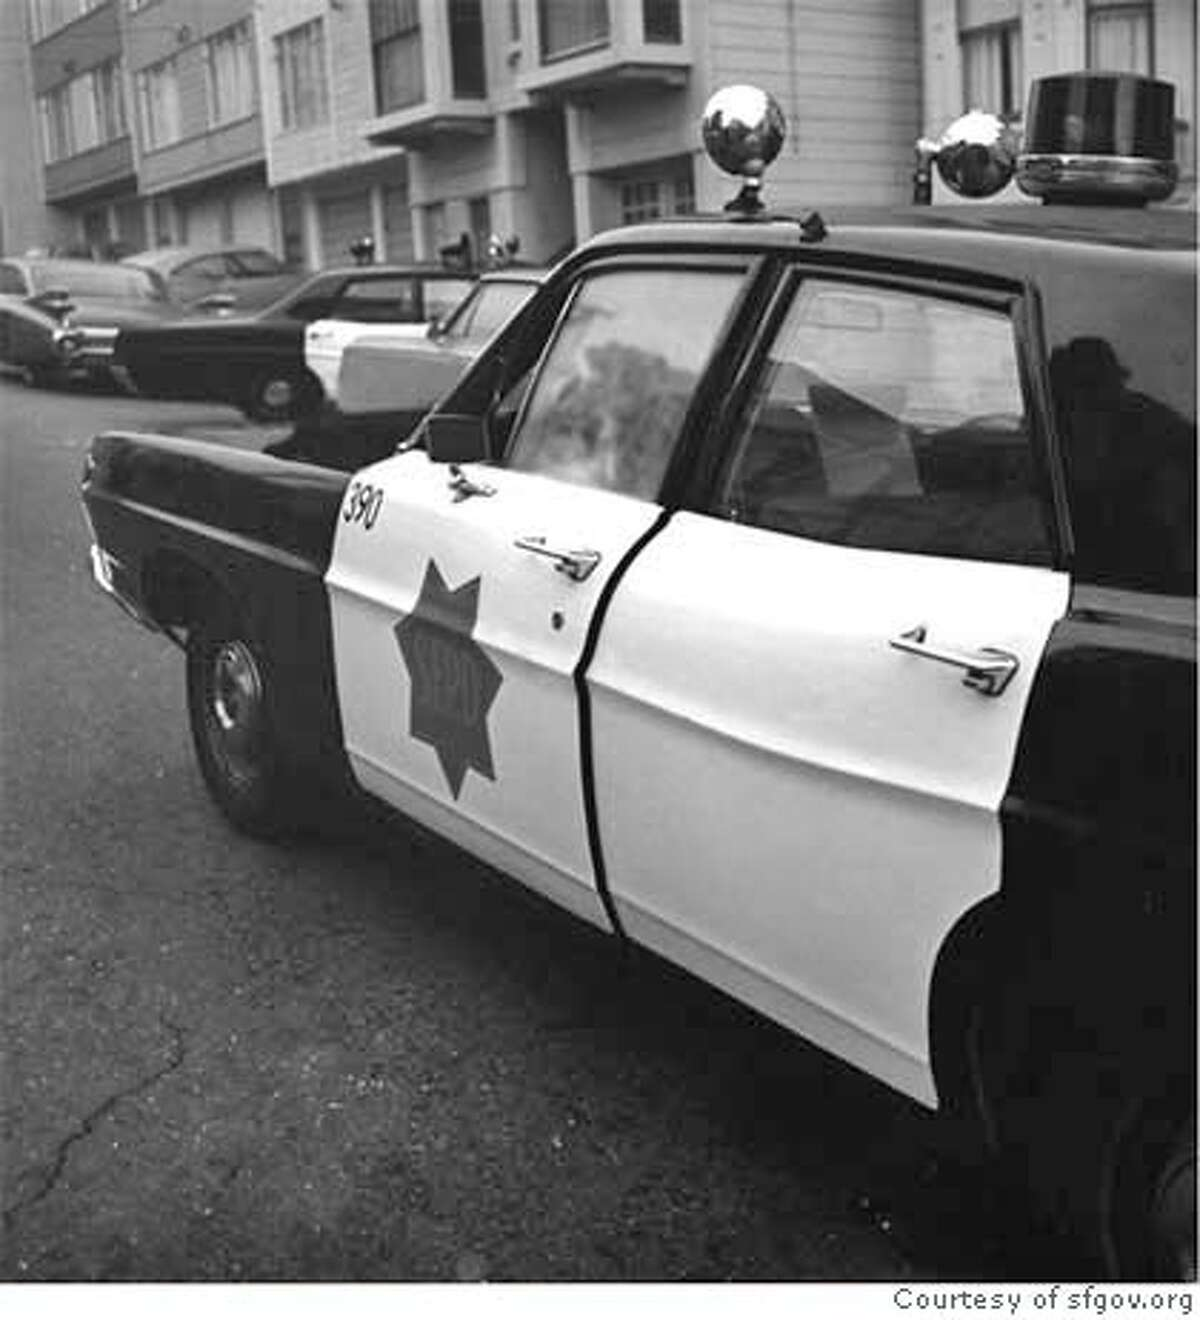 On Friday, June 19, 1970, at approximately 5:25 A.M., San Francisco Police Officer Richard Radetich was murdered while sitting in police vehicle 390 parked in front of 643 Waller Street. Credit: Courtesy of sfgov.org